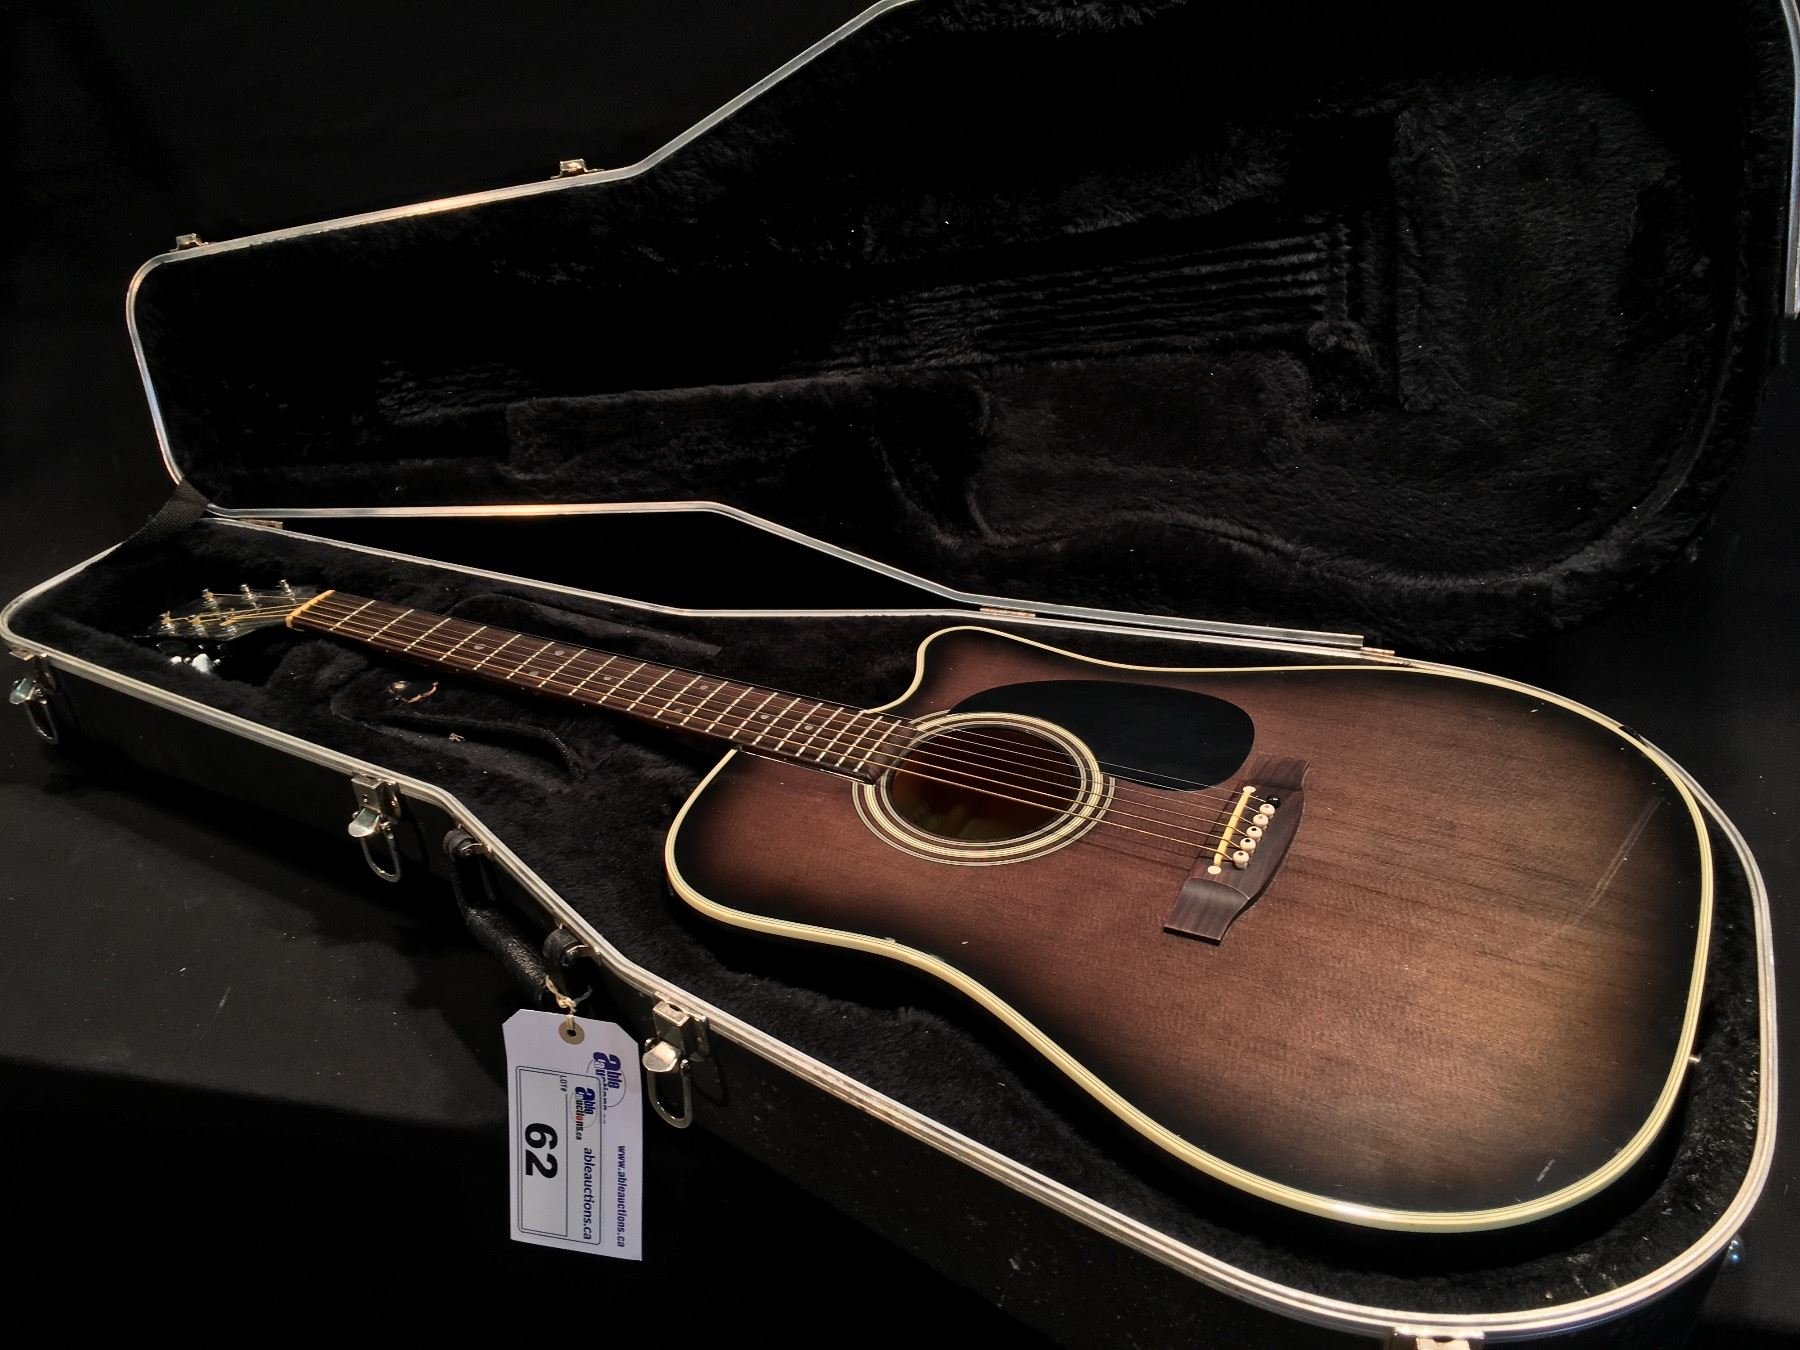 takamine electric acoustic guitar serial number 93021490 made in japan with b chk eq module. Black Bedroom Furniture Sets. Home Design Ideas